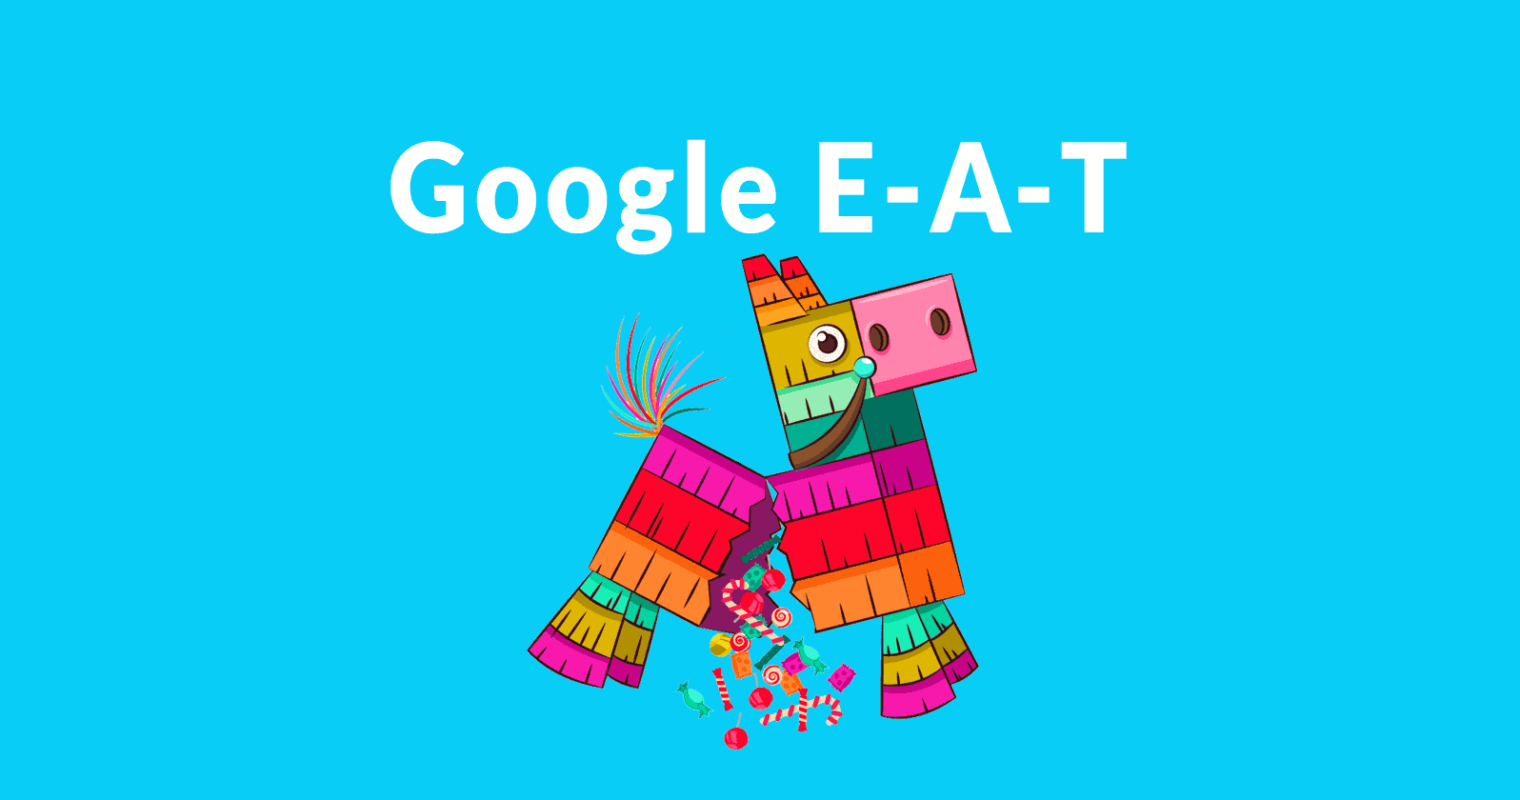 Google's Mueller Asked About Increasing E-A-T with Structured Data